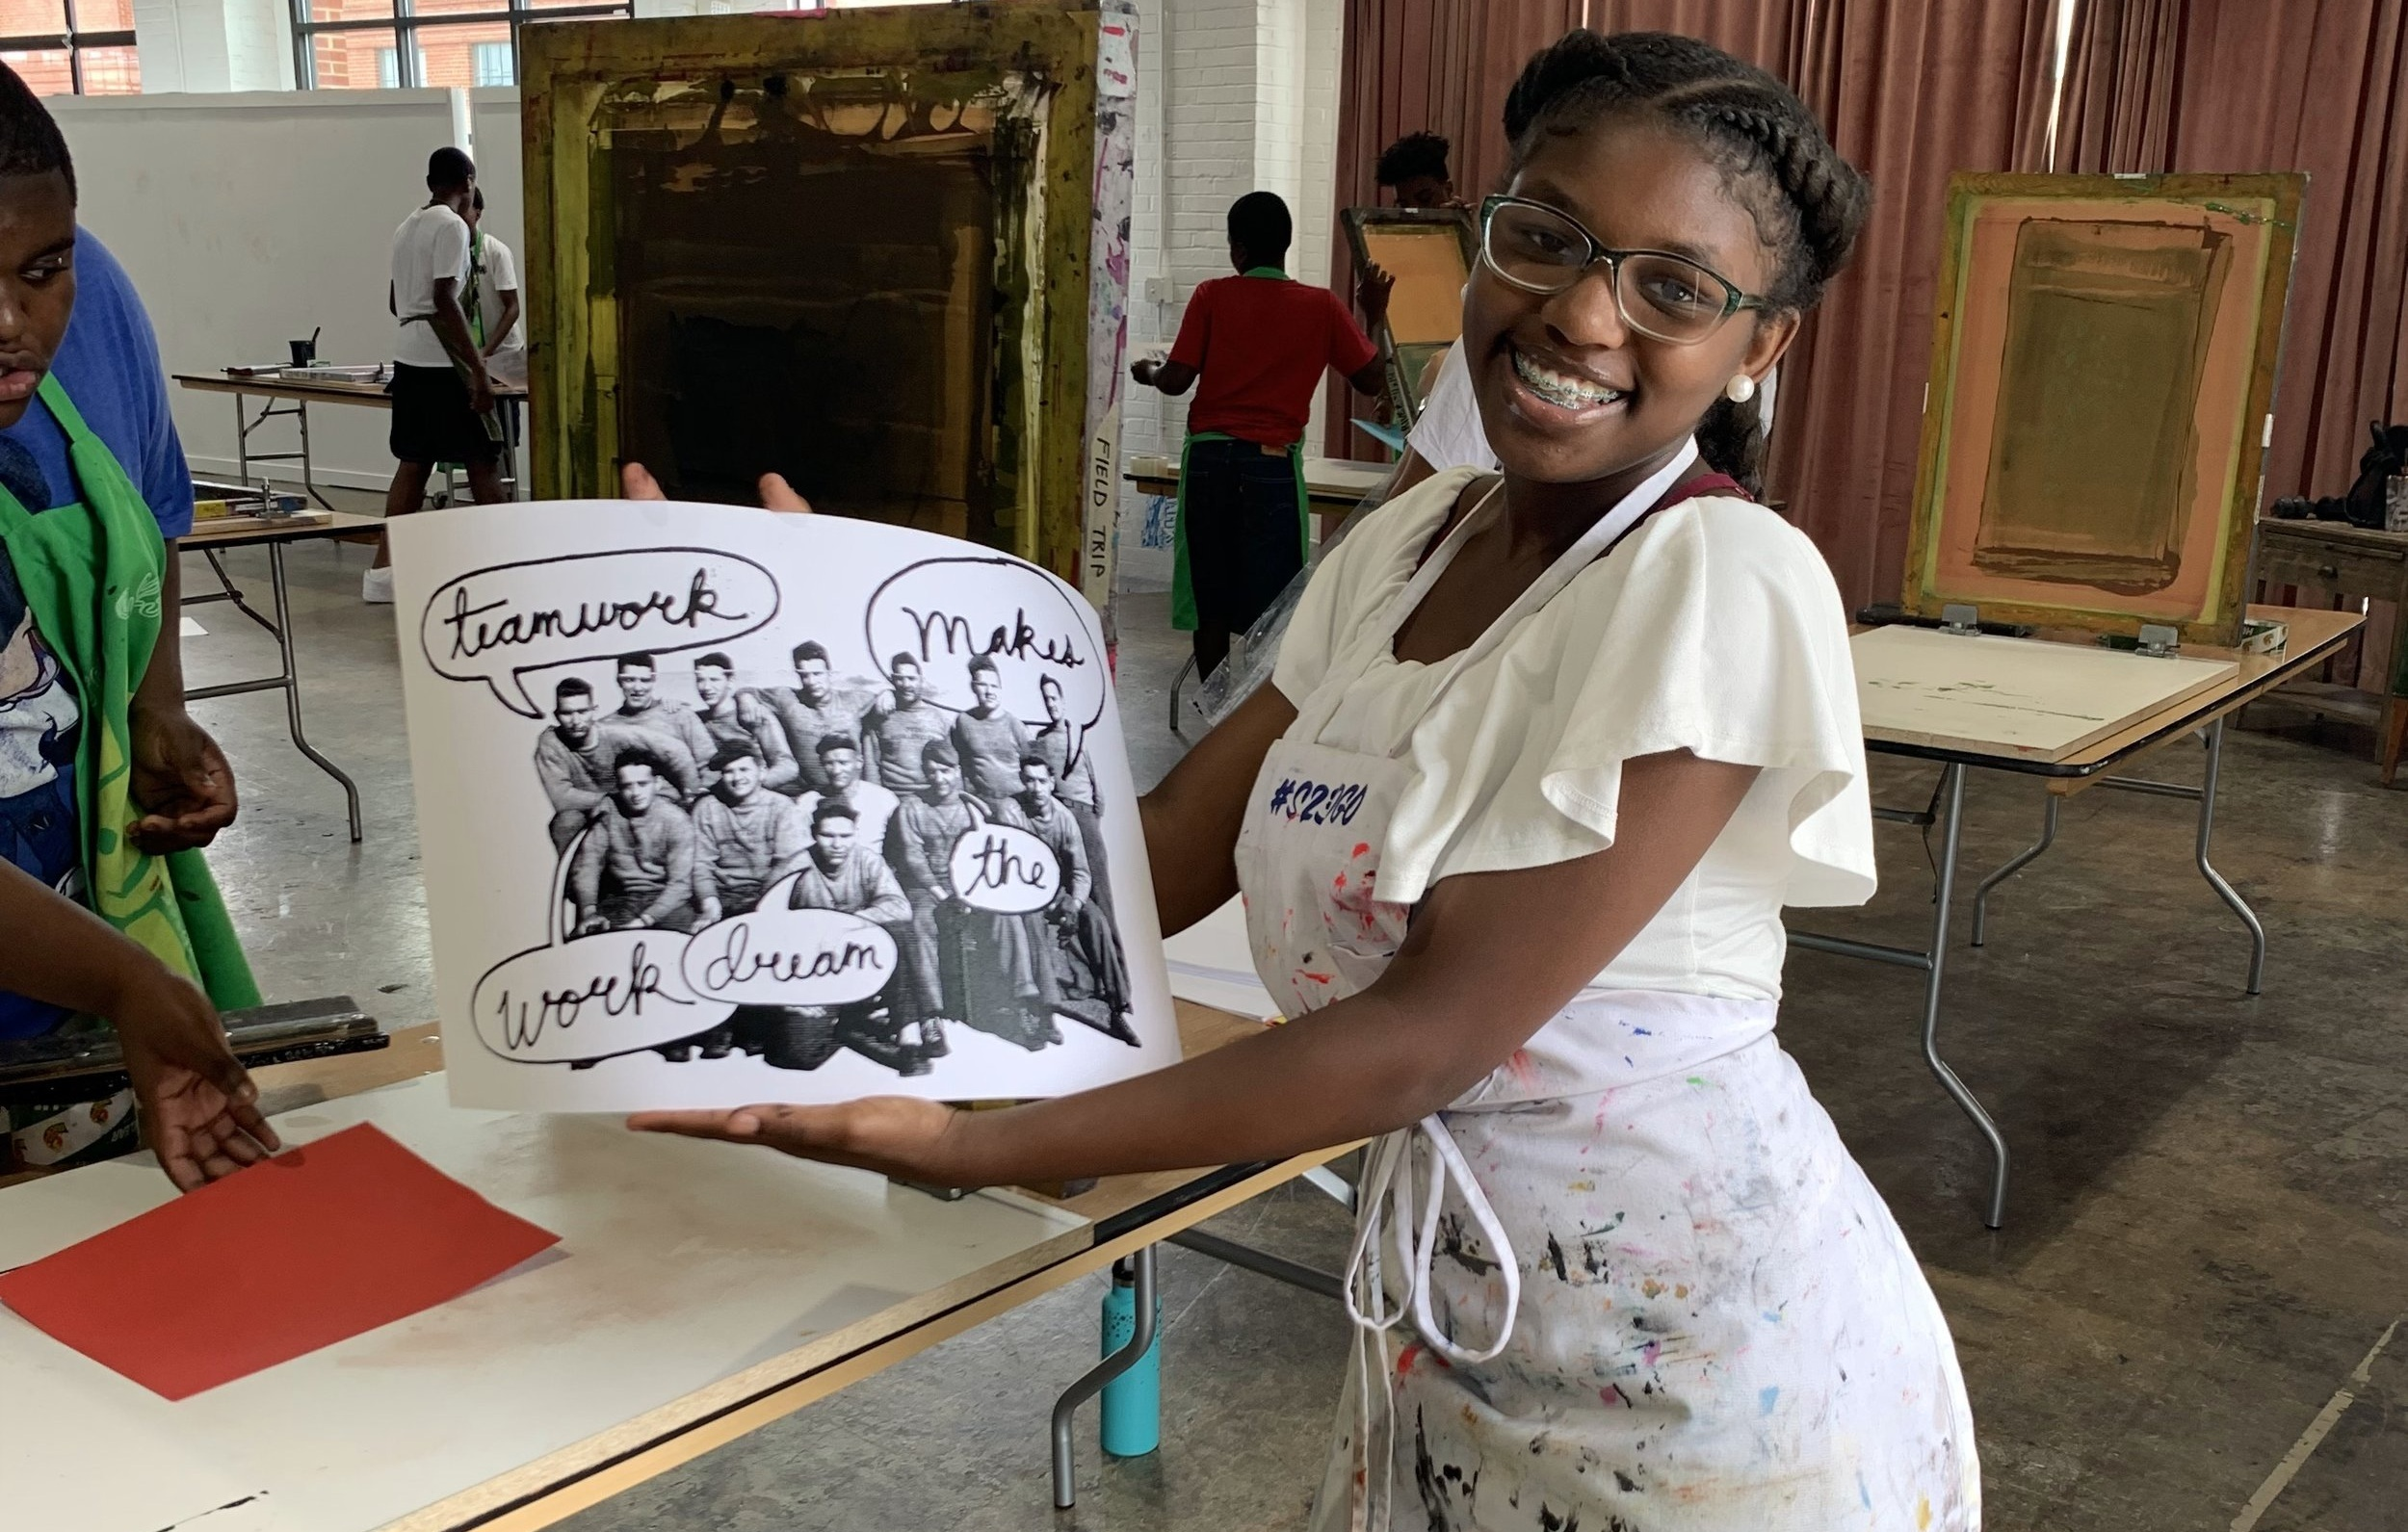 A'Landa shows off her print made at Studio Two Three.